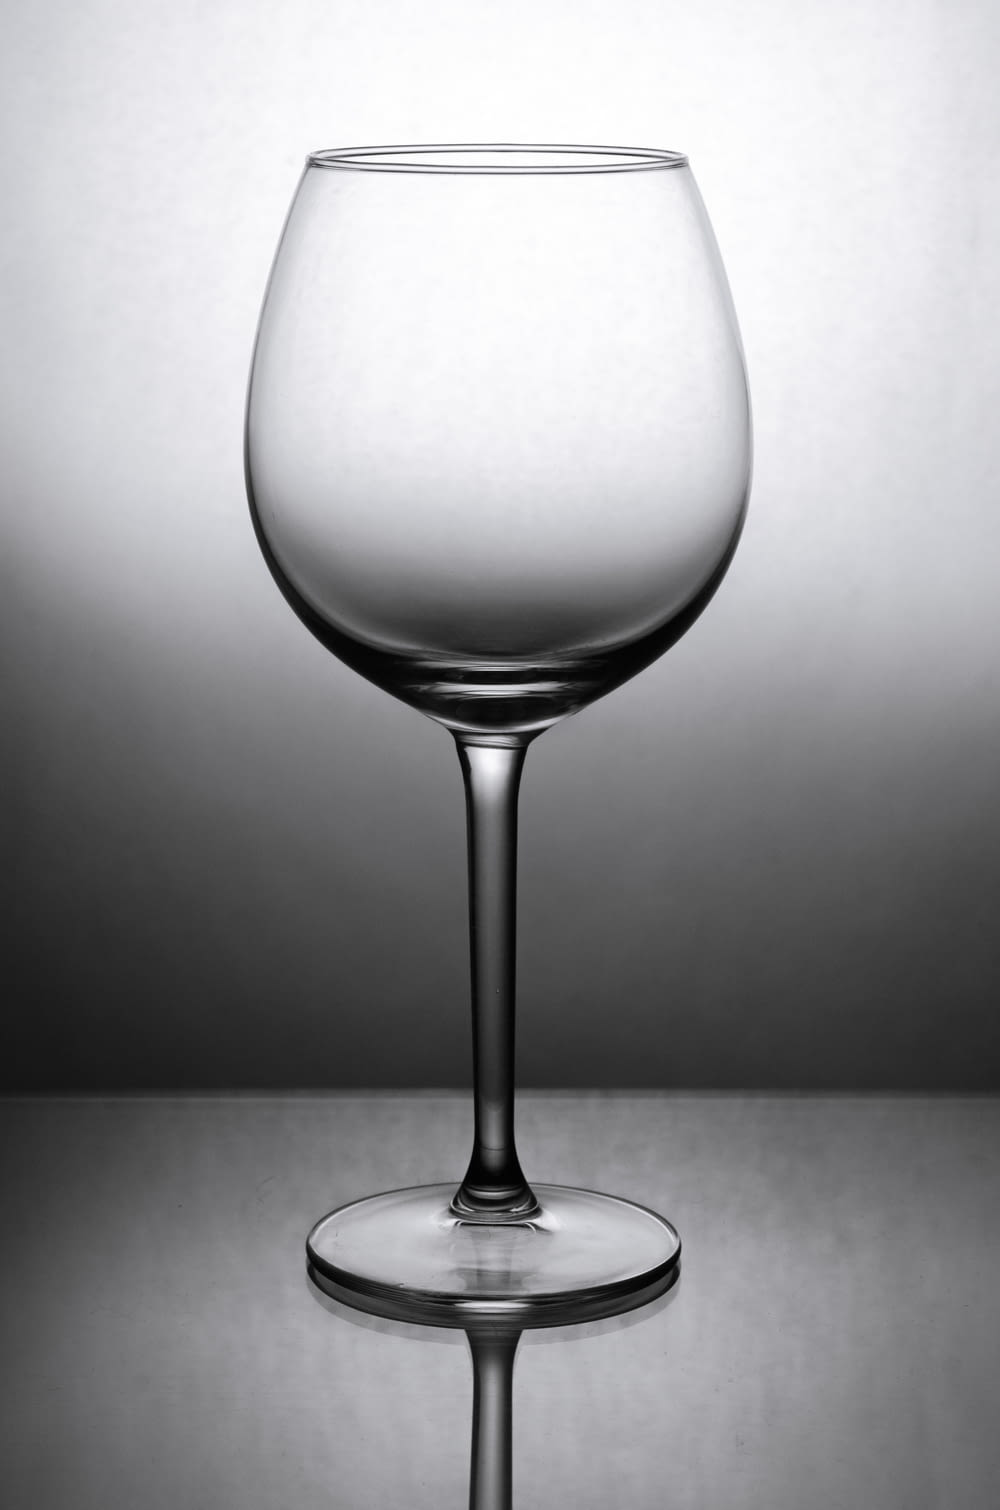 grayscale photo of wine glass